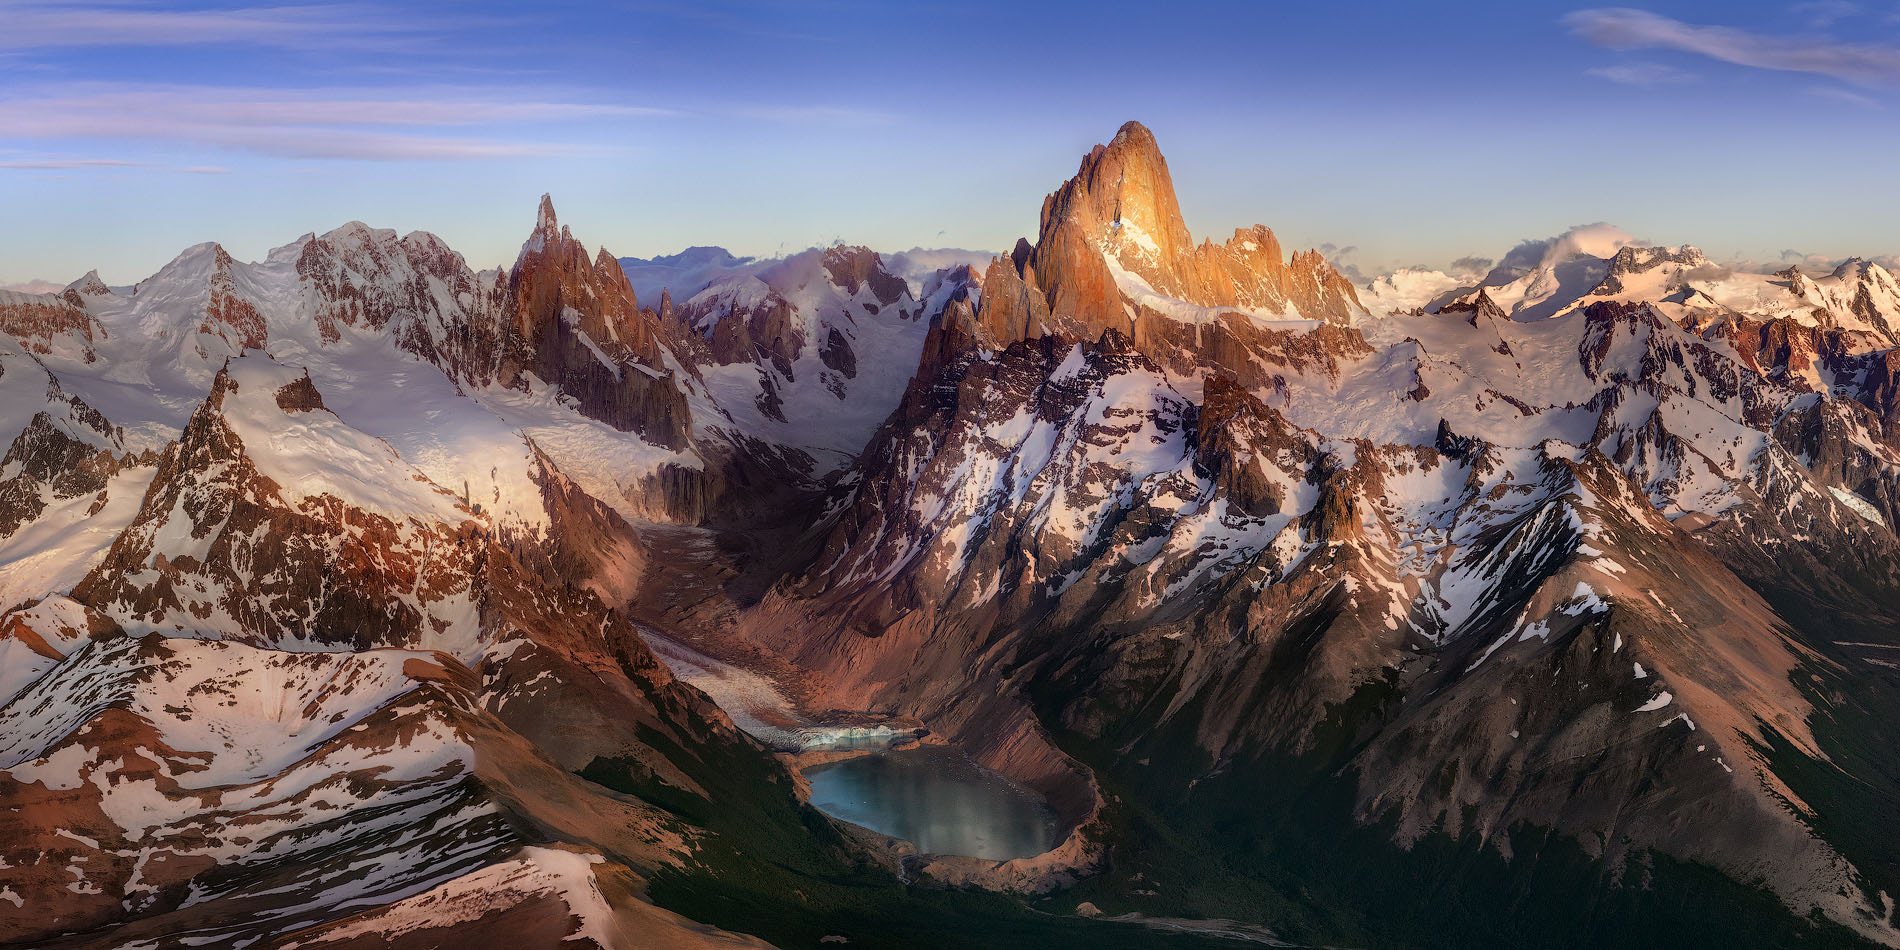 Photograph Unseen Cordilleras by Mike Reyfman on 500px